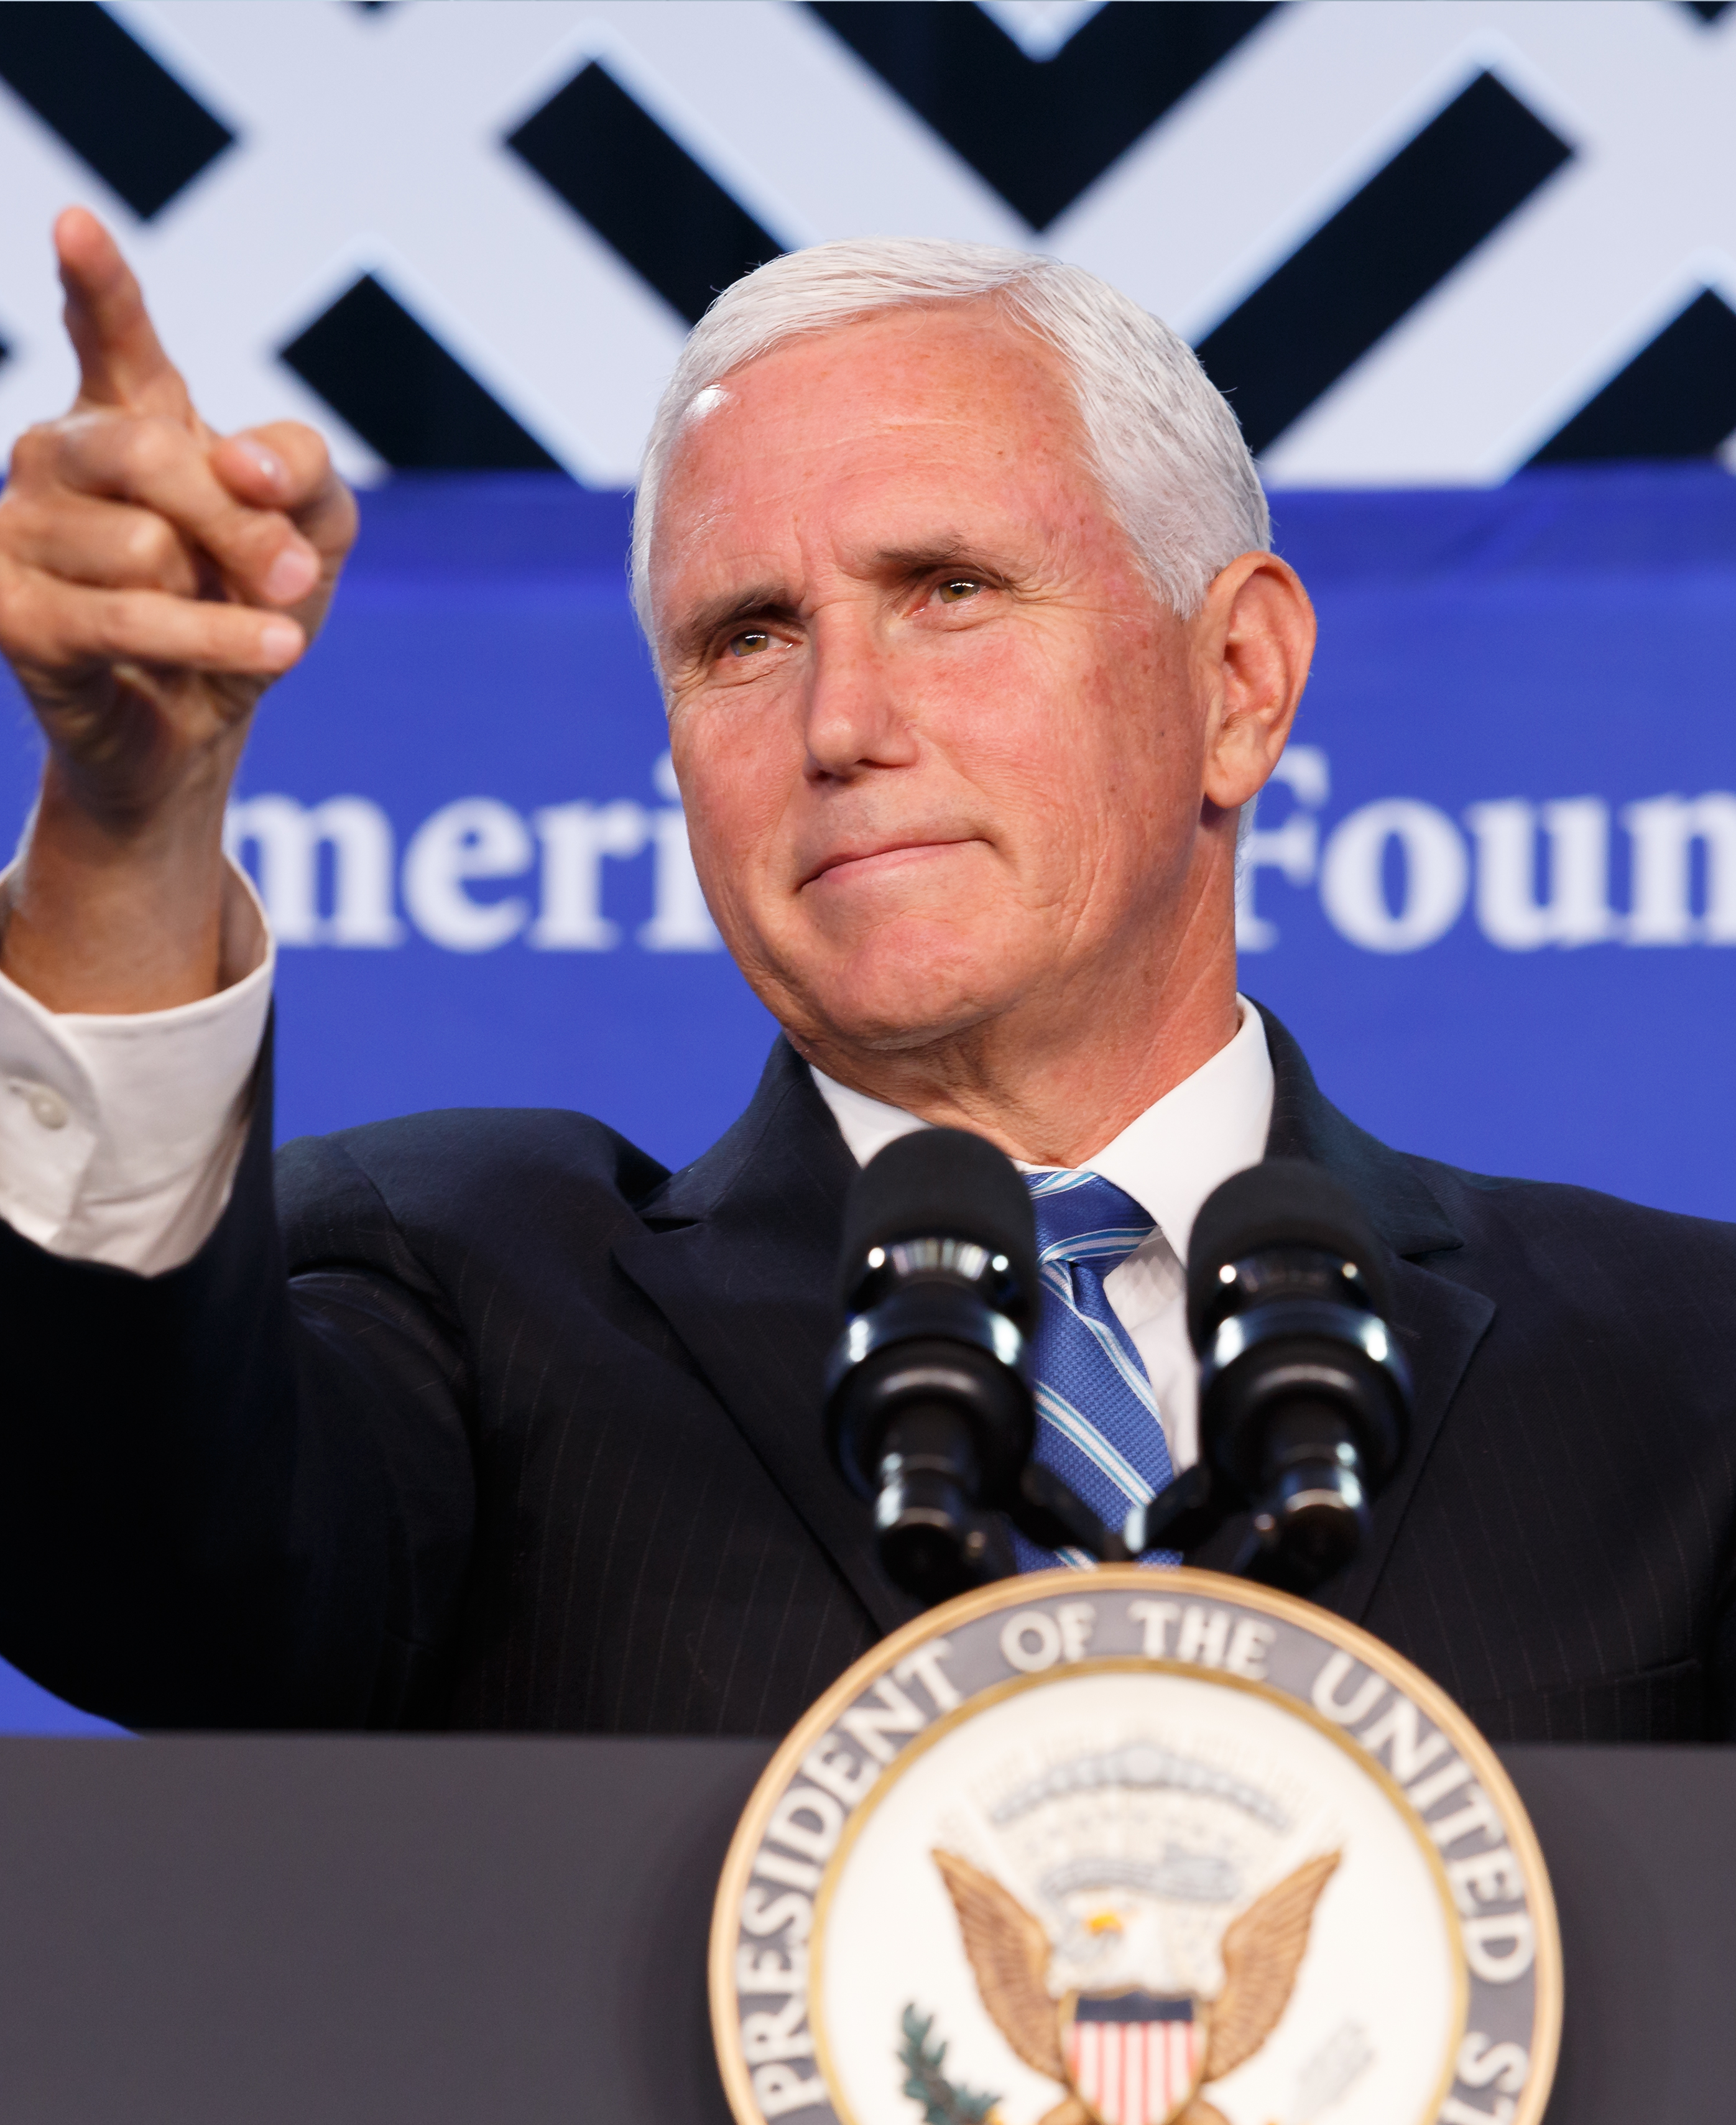 <h1><b>Discover How You Can Host Vice President Mike Pence on Your Campus!</b></h1>